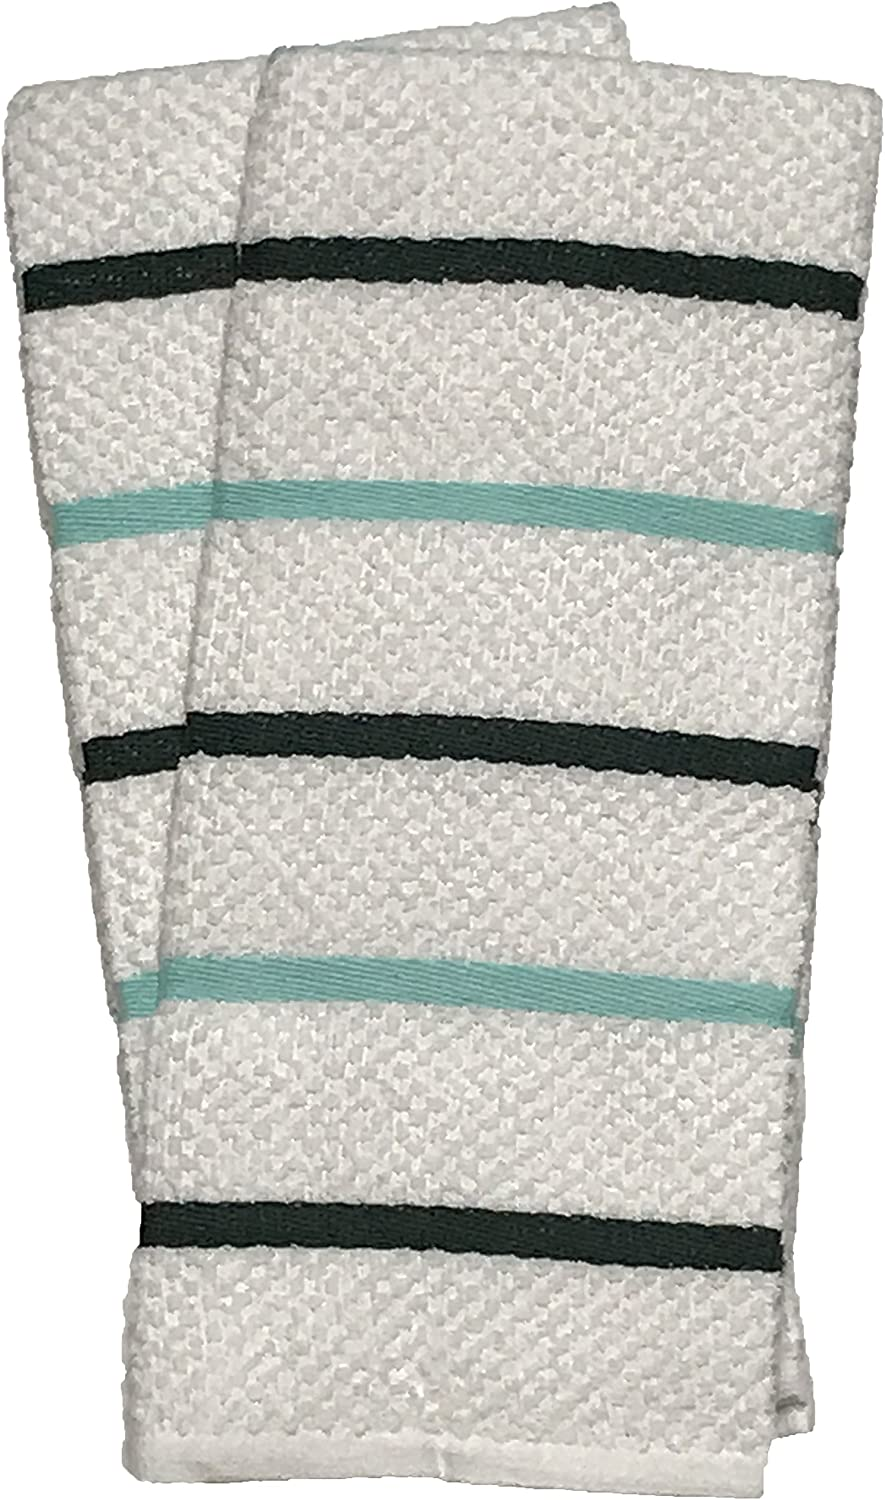 "100 Ringspun Ribbed Terry Cotton Kitchen Towel Size: 16/"" x 26/"" Premium Quality Ultra Absorbent /& Durable for Wiping Down Counter-Tops Green//Teal Stripes Dusting or Drying Dishes. Set of 2"